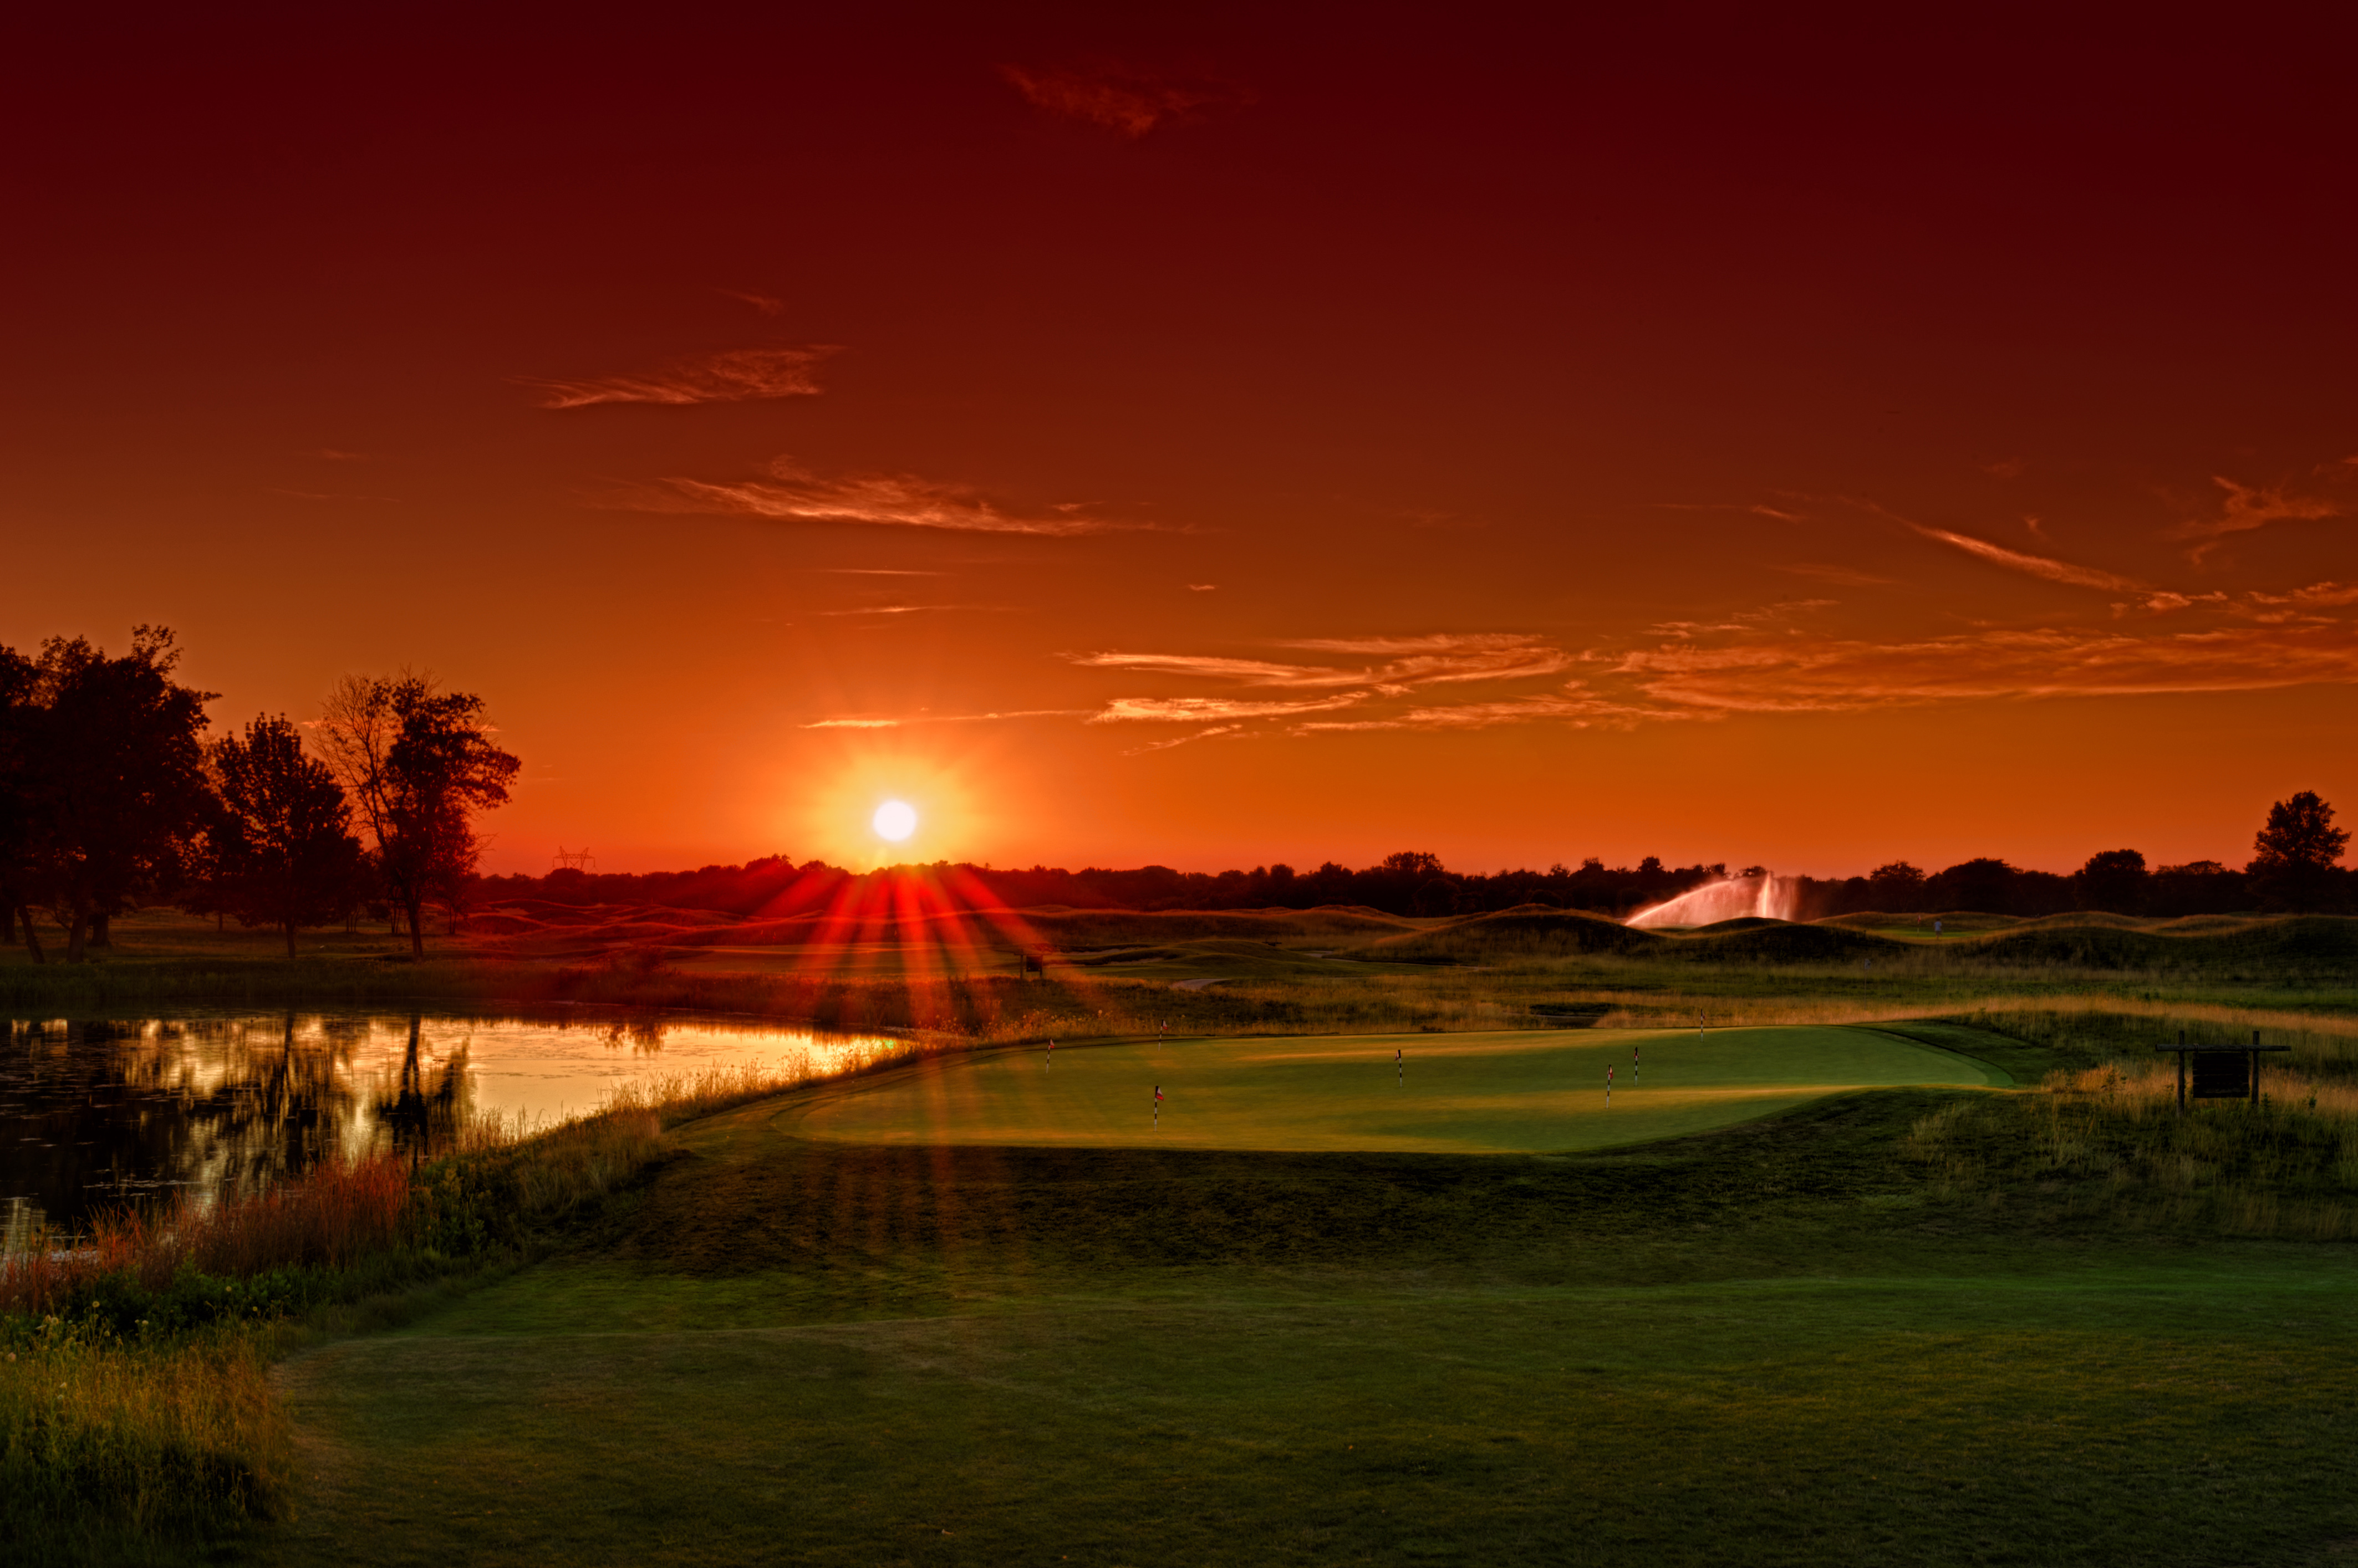 Sunset over the short game practice area - Purgatory Golf Club